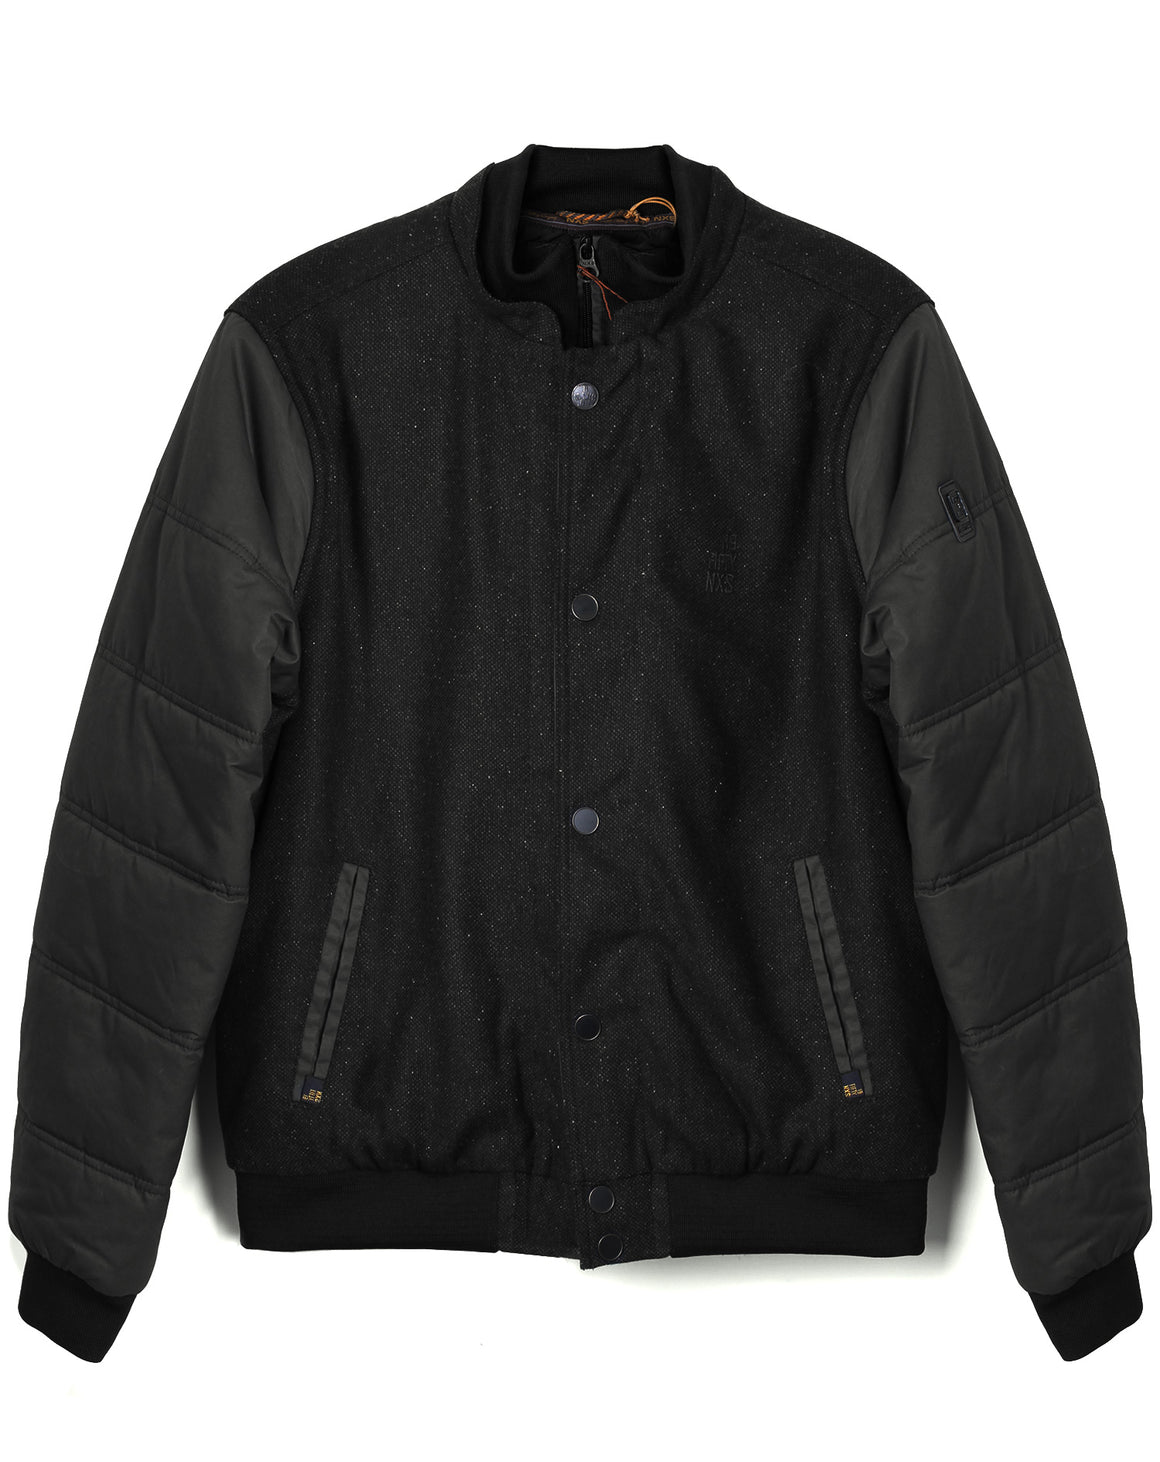 Mens Wool Jacket - Black